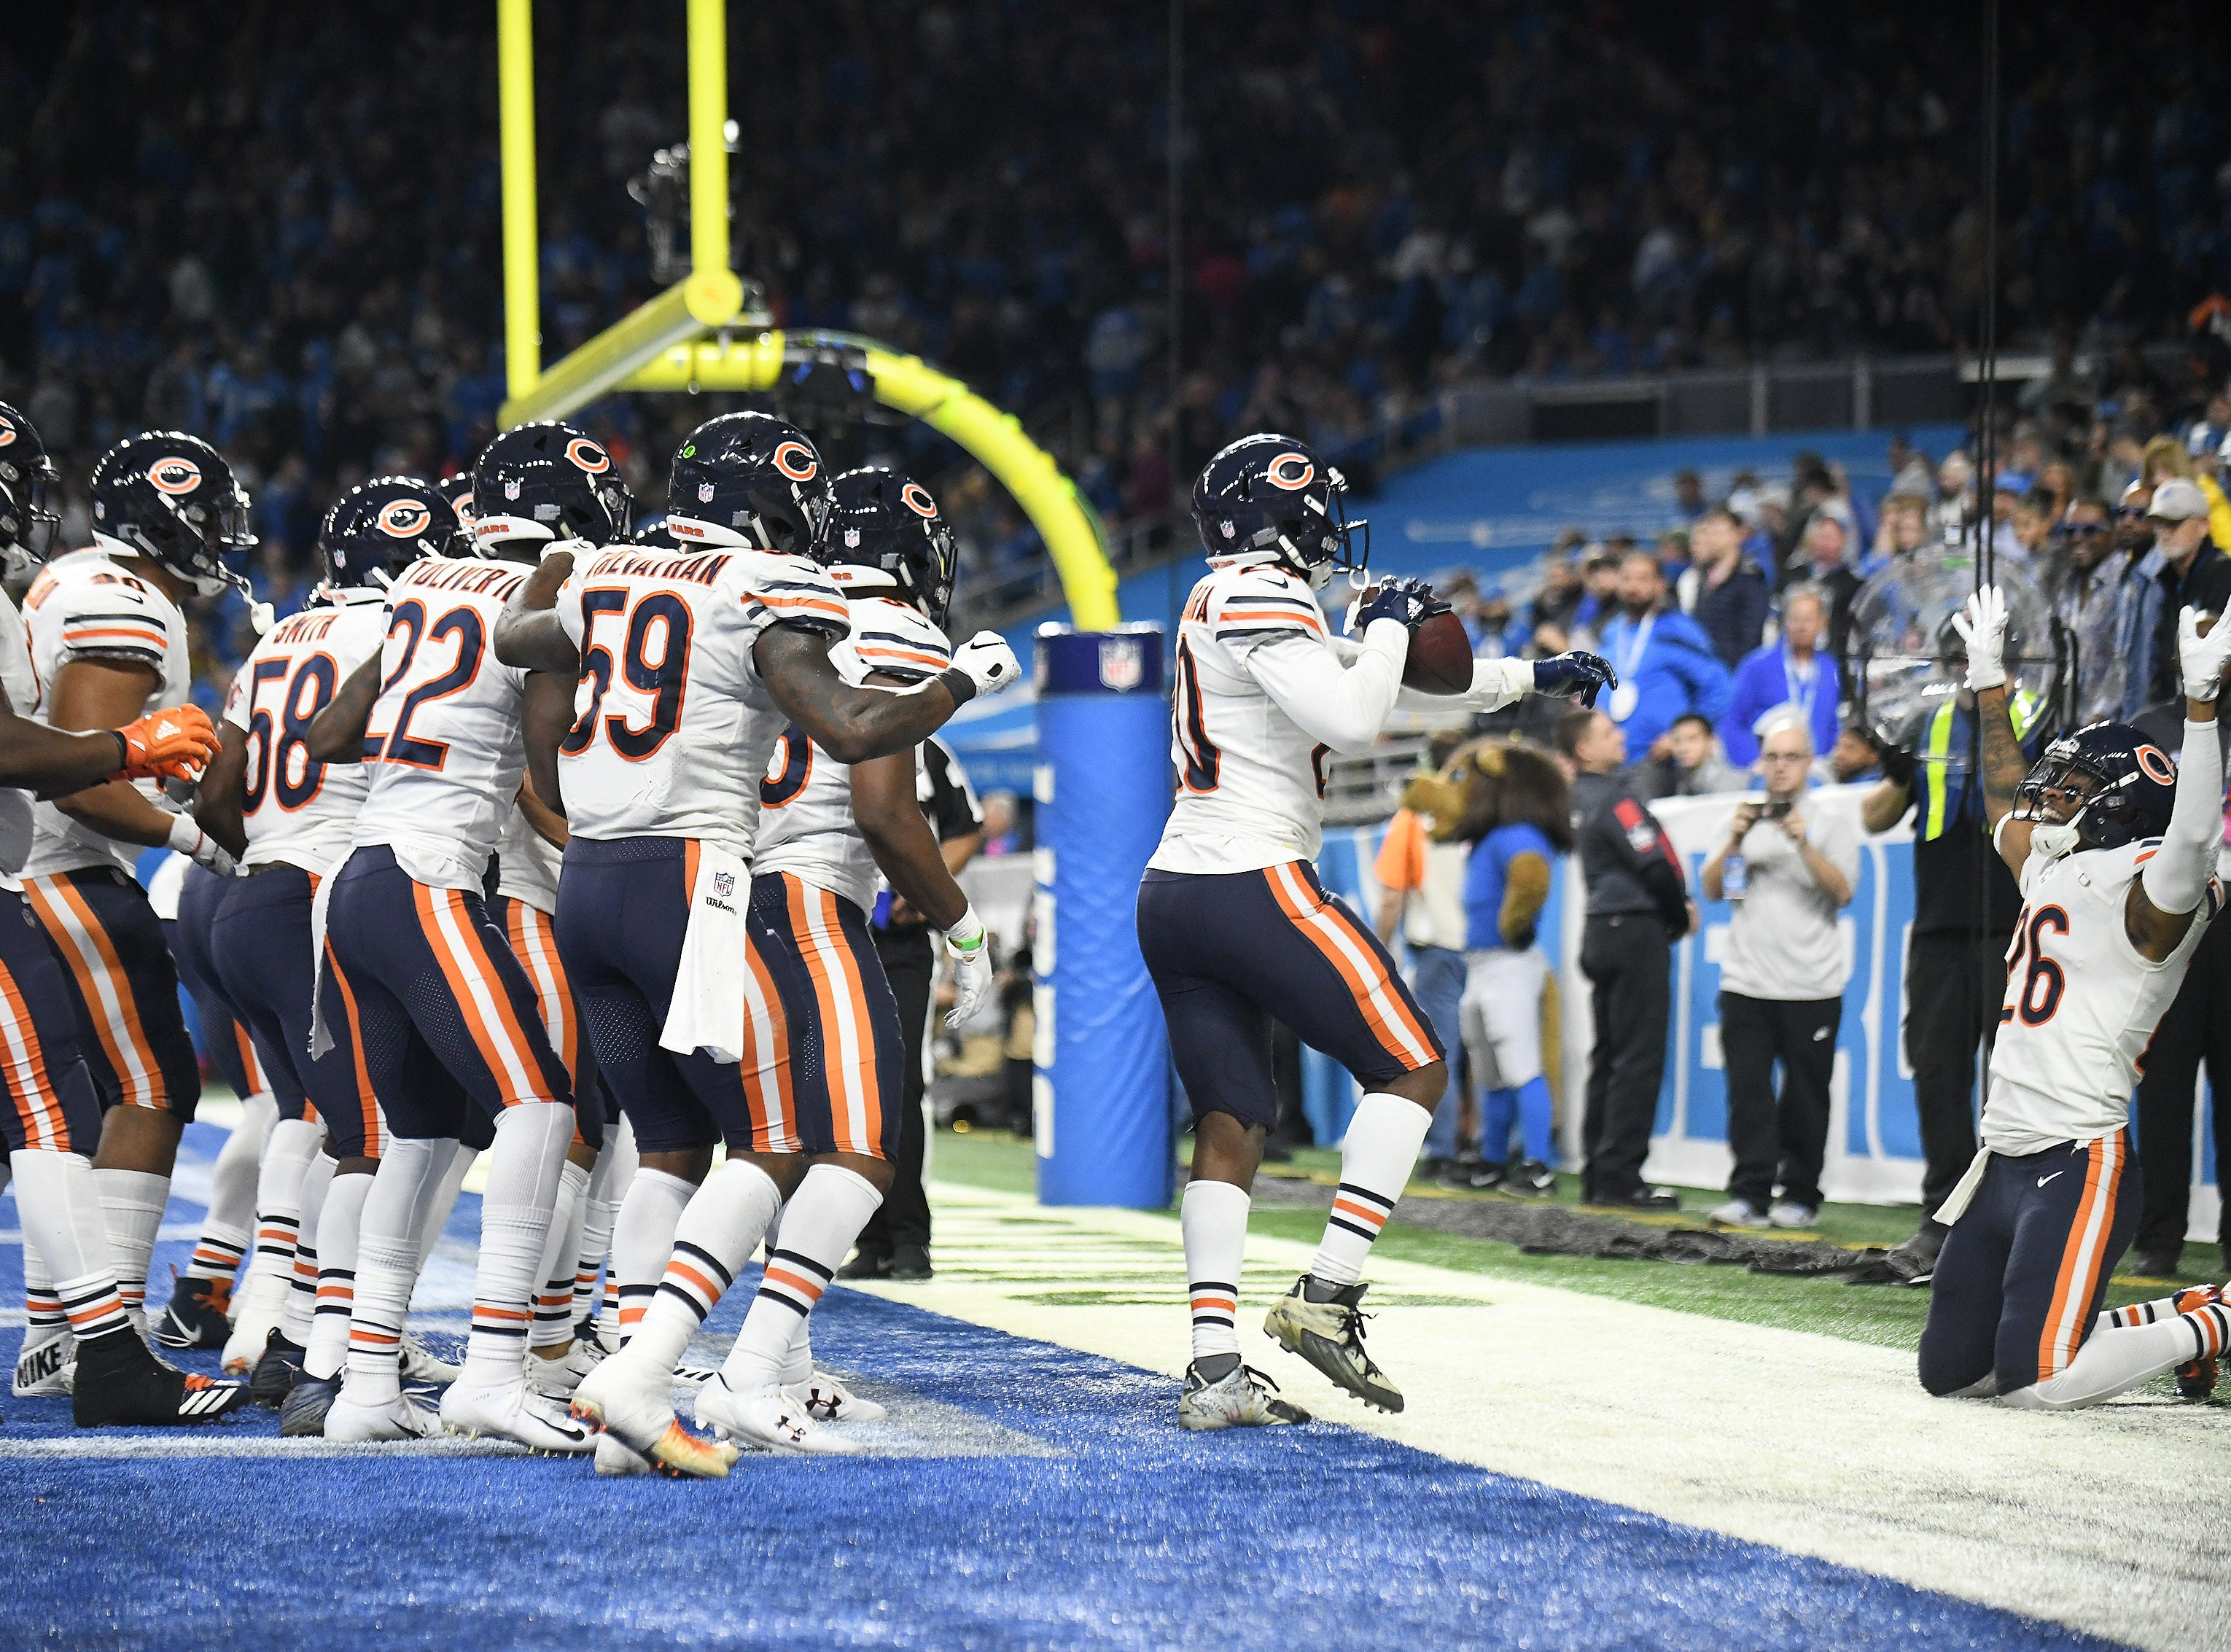 Chicago Bears do a group celebration after Kyle Fuller made an interception in the Lions end zone In the fourth quarter.  Detroit Lions vs Chicago Bears on Thanksgiving Day at Ford Field in Detroit on Nov. 22, 2018.  Bears win, 23-16.(Robin Buckson / Detroit News)